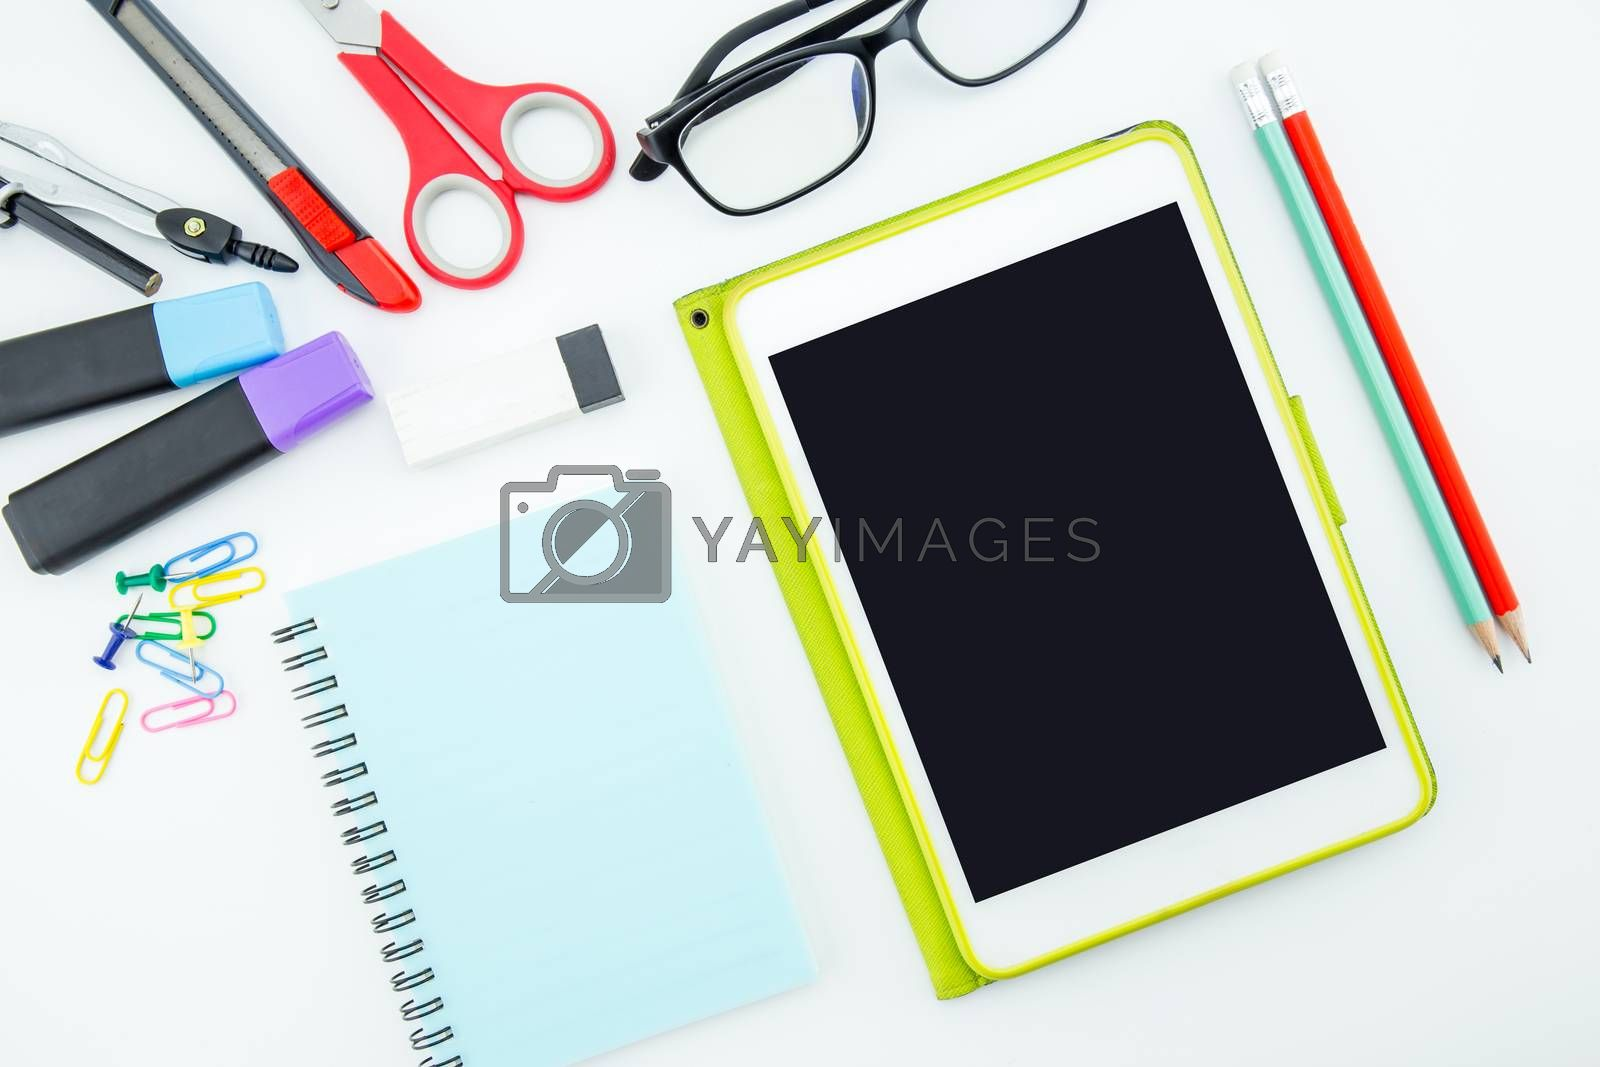 school supplies, stationery accessories on white background, Flat lay, top view.